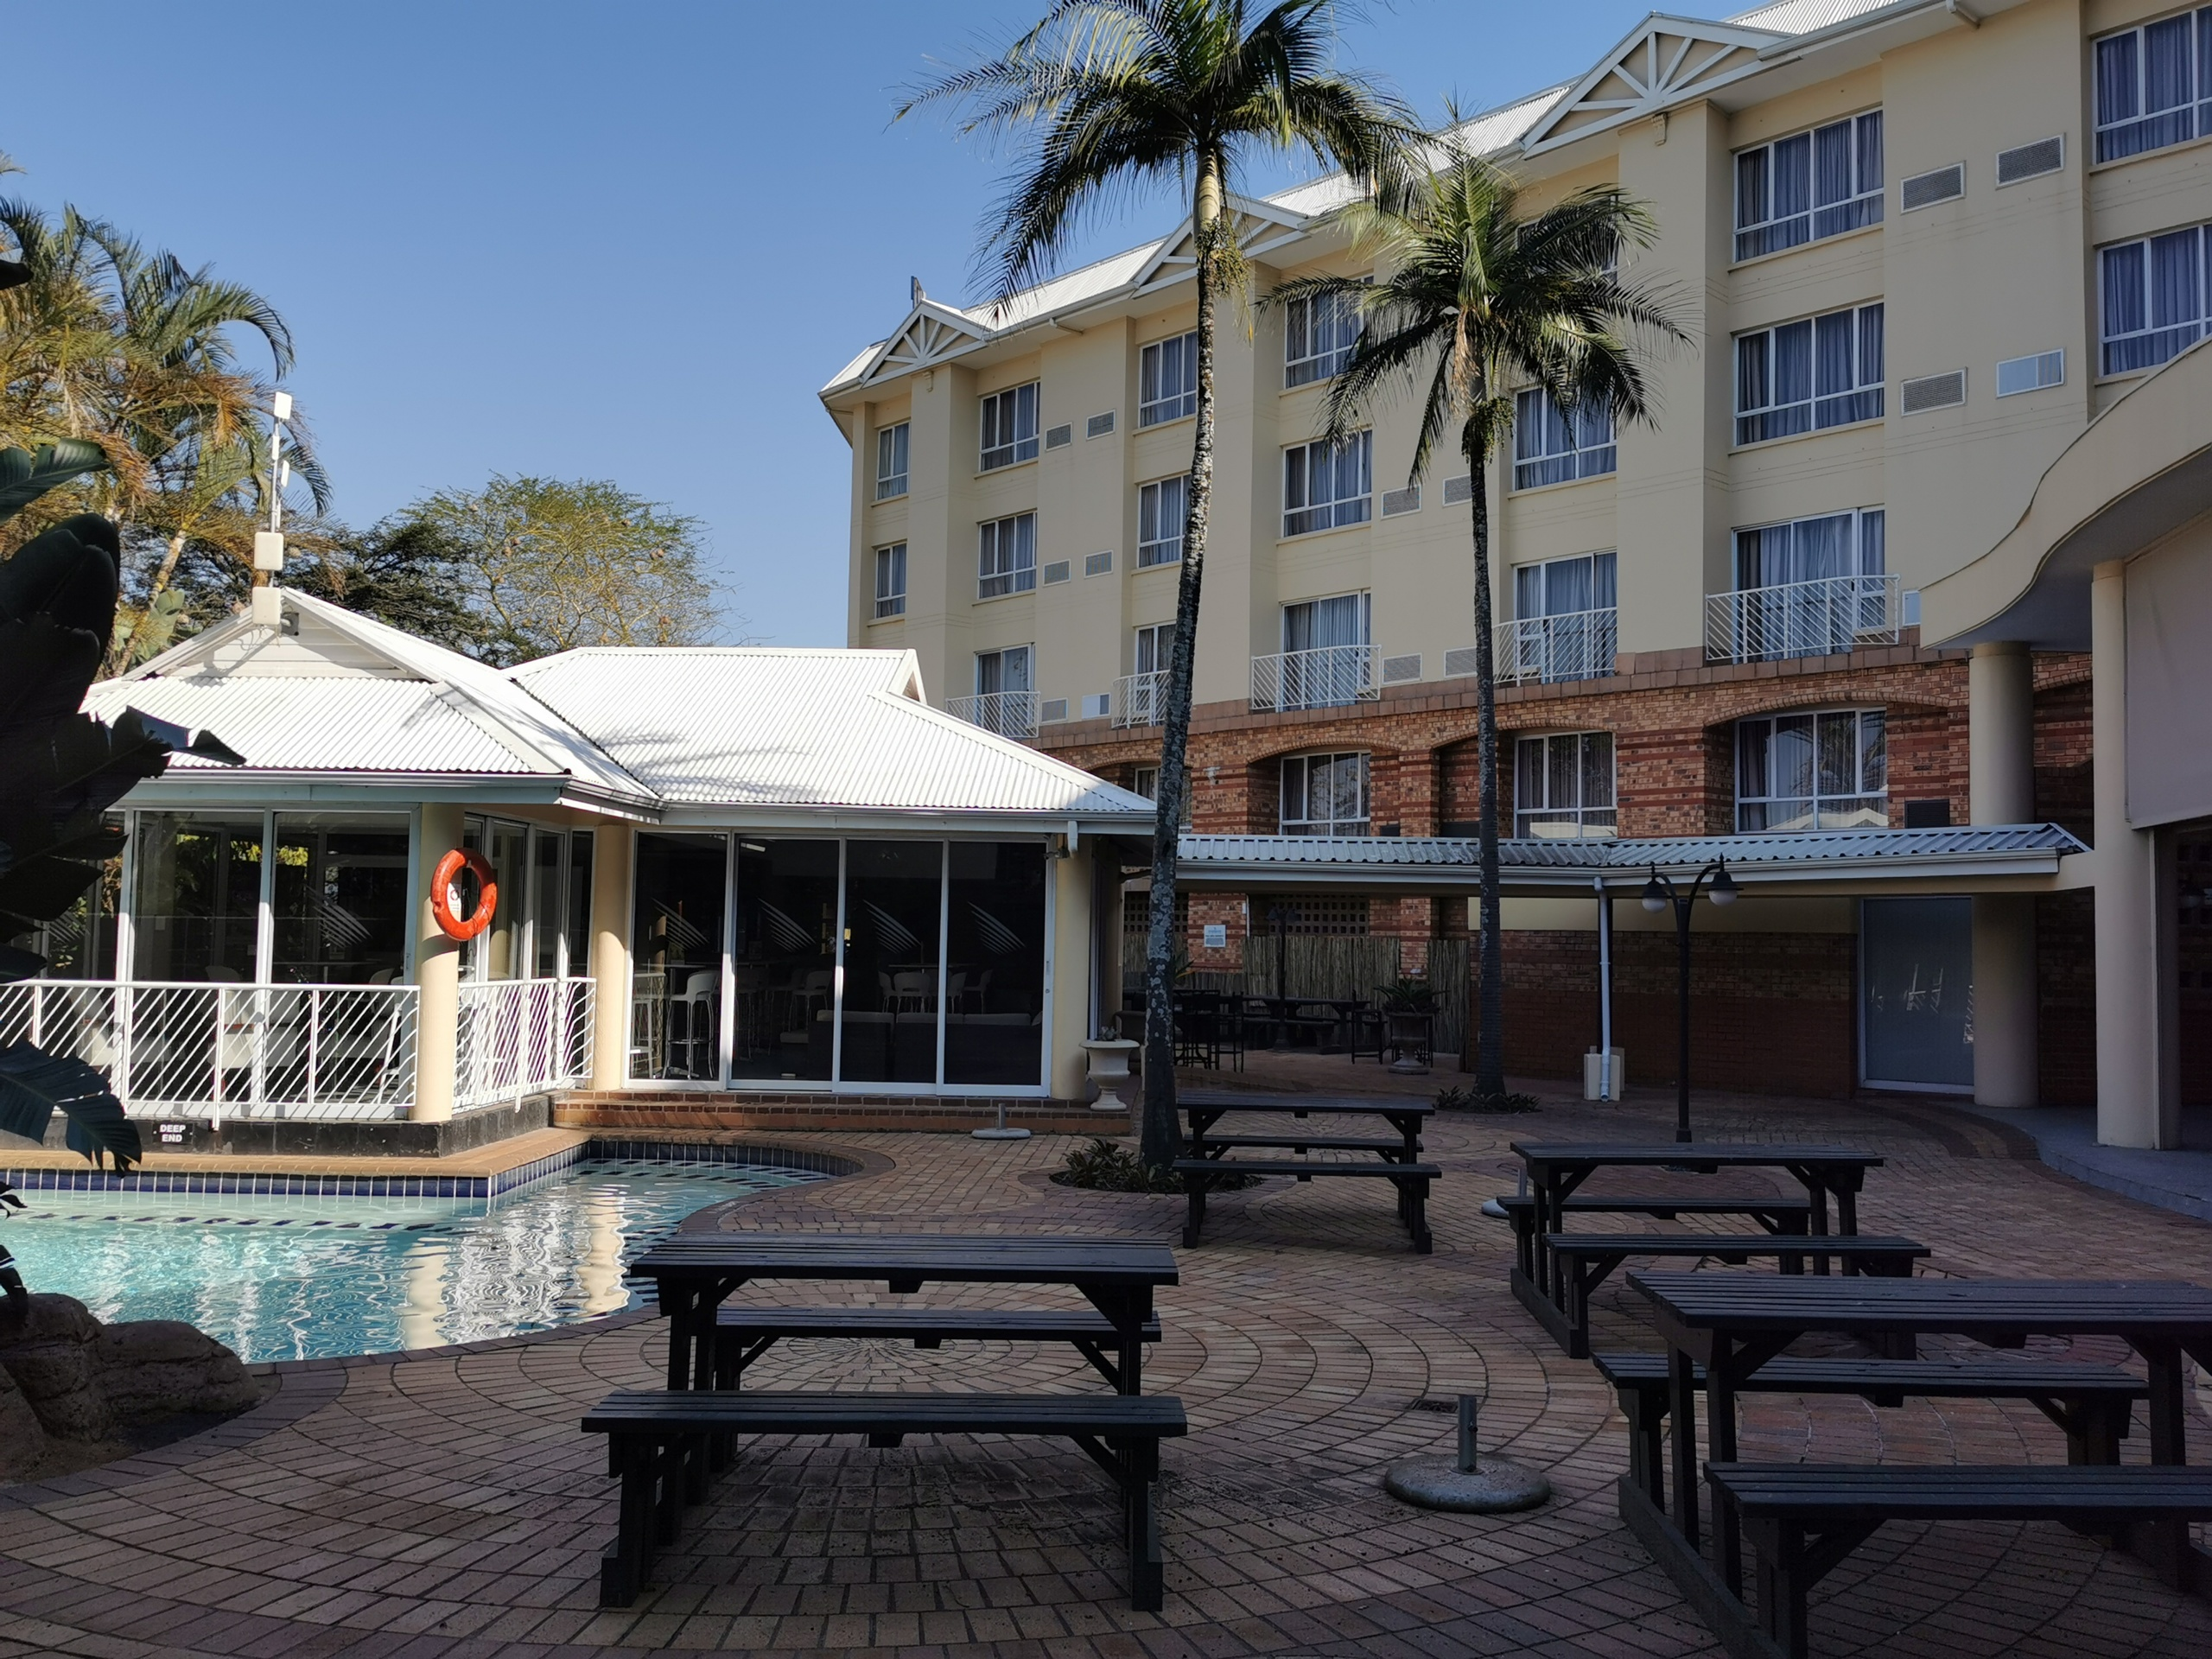 Pool Side Bar at The Riverside Hotel in Durban